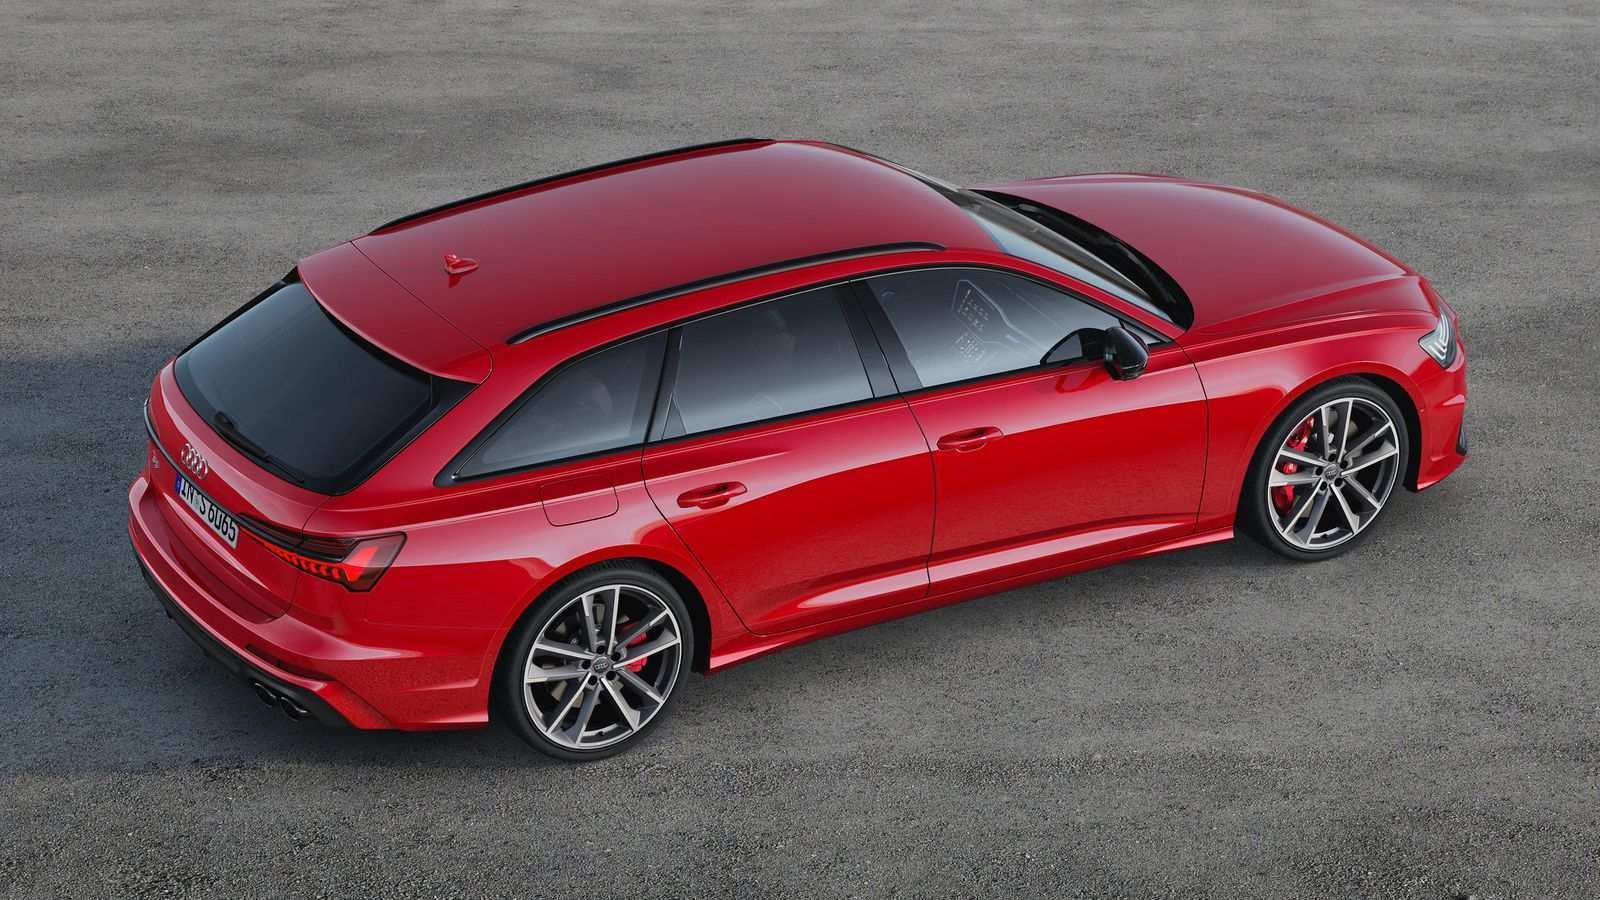 63 All New 2020 Audi S6 Engine